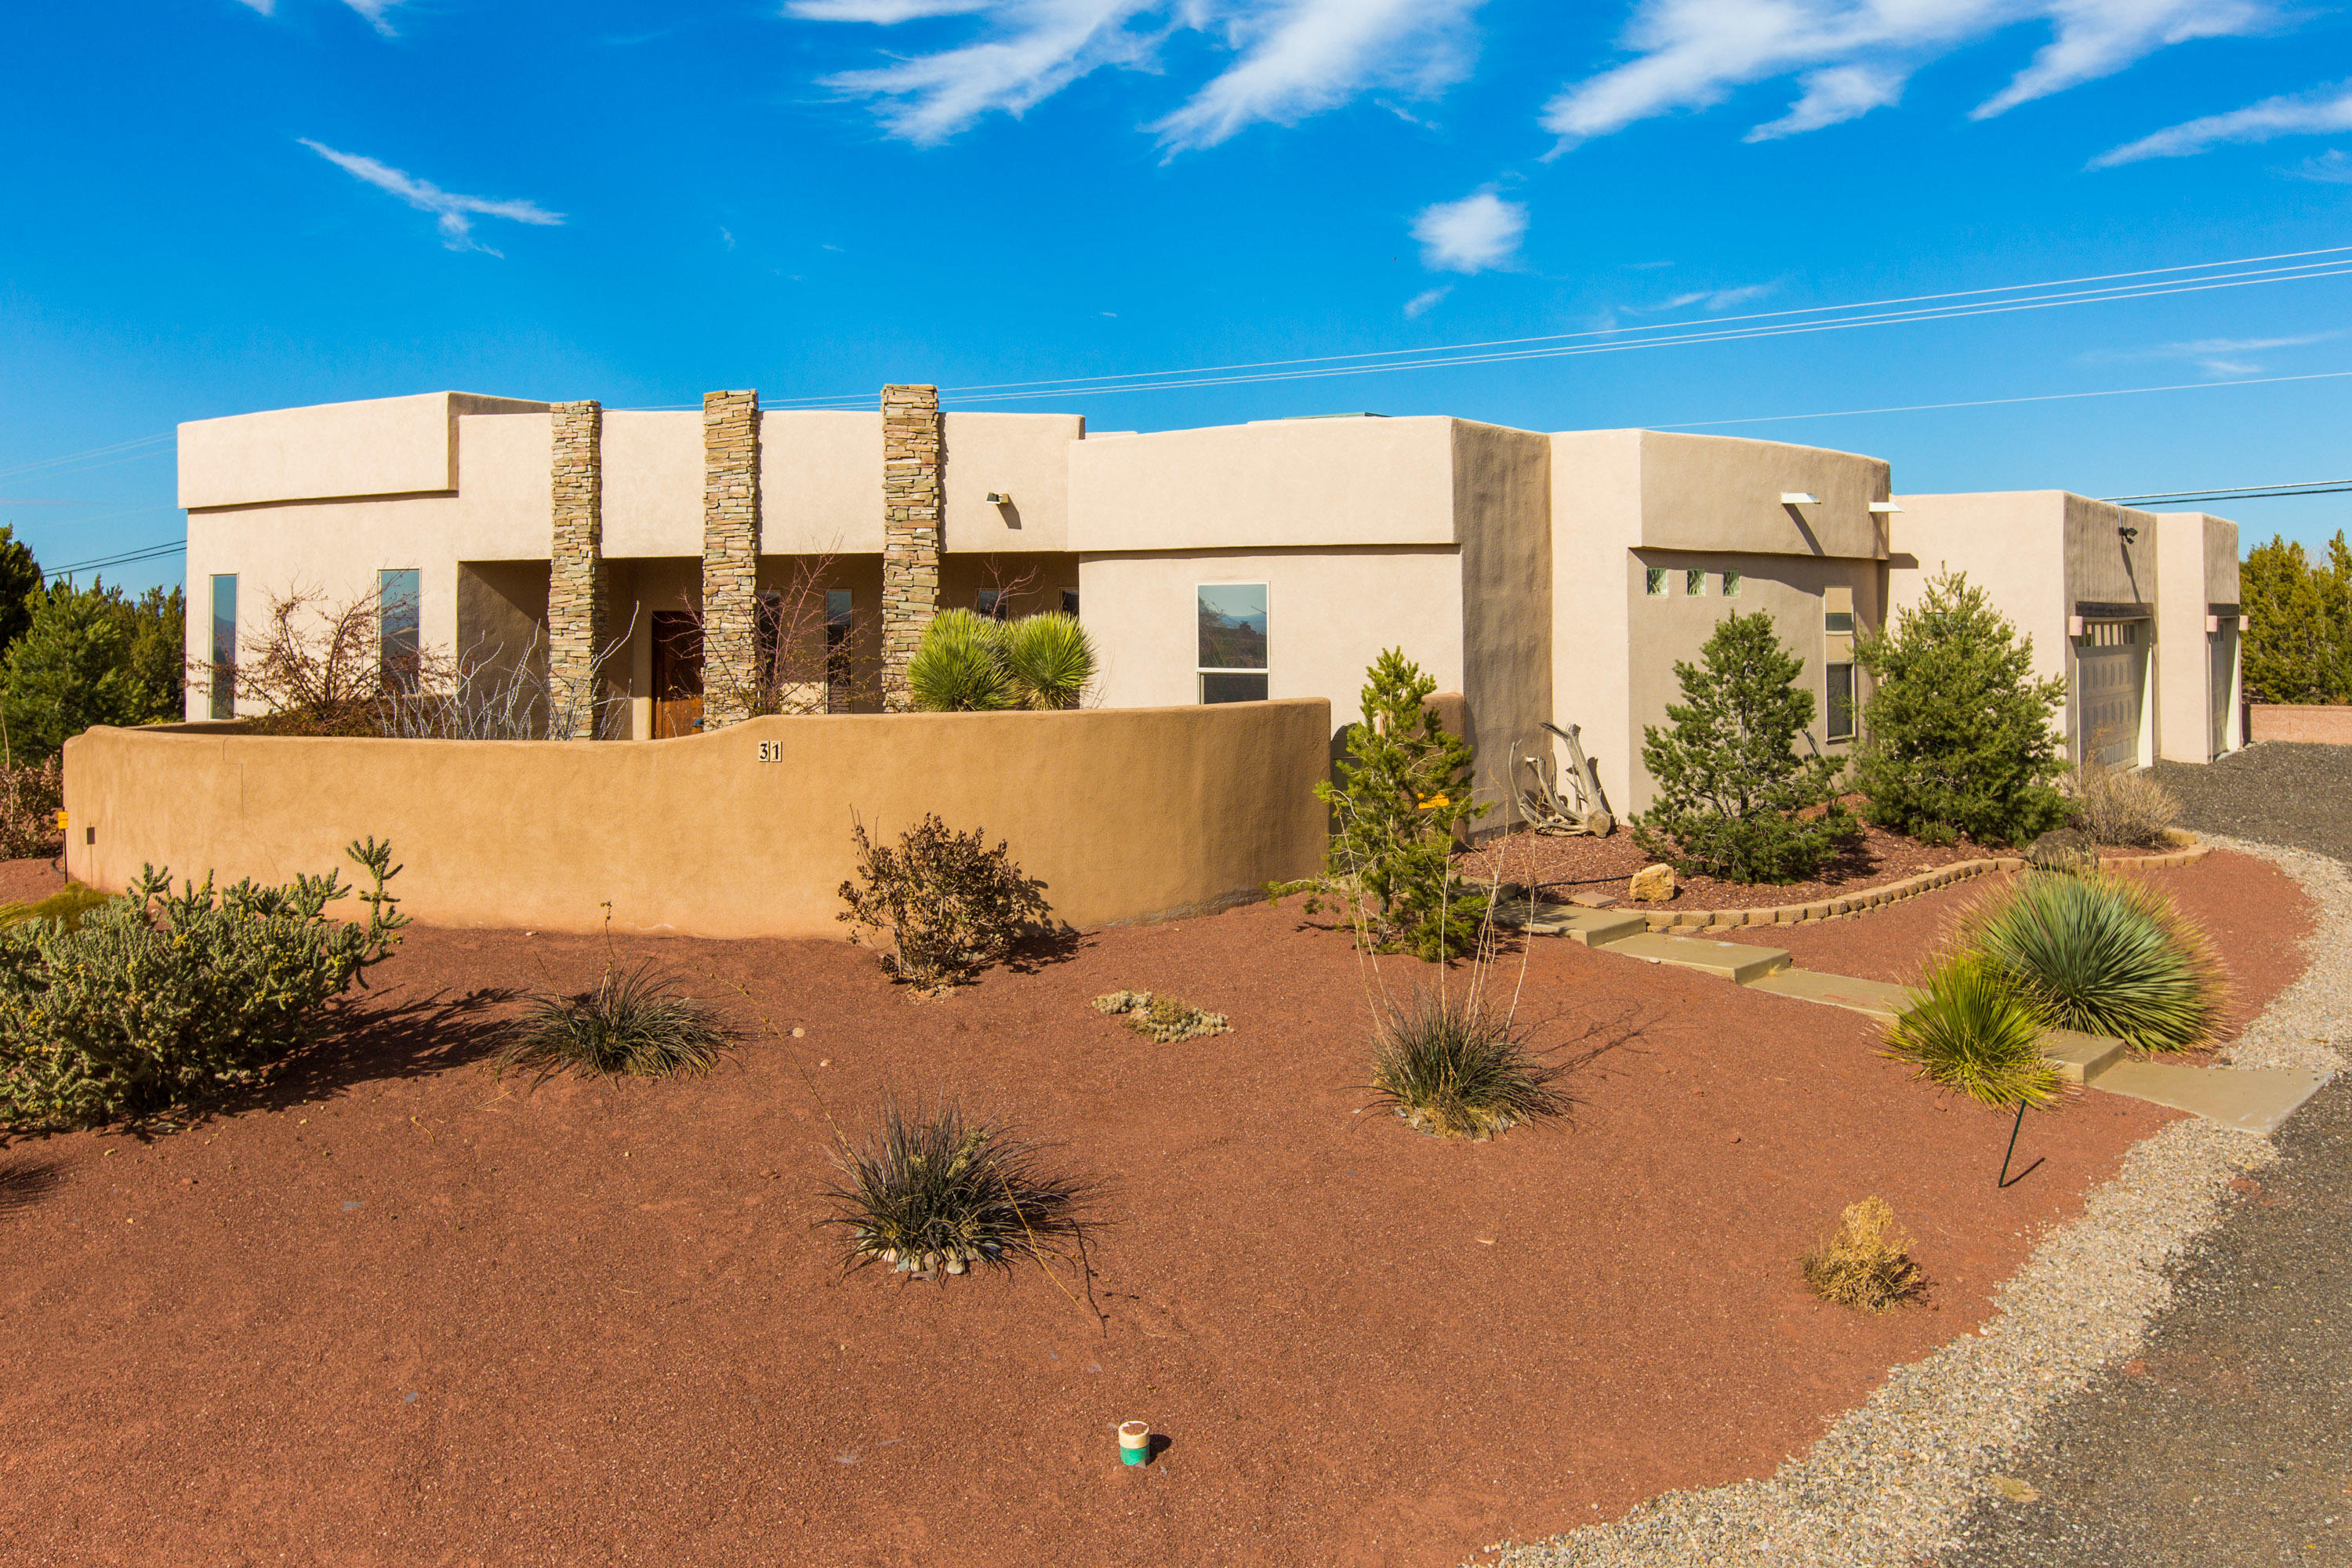 This stunning Placitas home has a perfectly designed floor plan. Step through the private courtyard and through the front door to vaulted ceilings, an open kitchen with sliding doors that open to the backyard, and a grand living room with stone fireplace. The owner's suite is on the opposite wing of other bedrooms, and has a small room off it (not included in the # of bedrooms) that is perfect for an office, yoga space, or hobby room. The owner's suite is spacious and has a gorgeous bathroom with walk-in shower. Updates/Features: beautifully remodeled kitchen; newer tile throughout living areas; brand new carpet in all bedrooms; 3-car garage with epoxy floors; tankless hot water heater; custom window treatments, and plenty more! Quick access to I-25. Don't miss this one- it's SPECIAL.